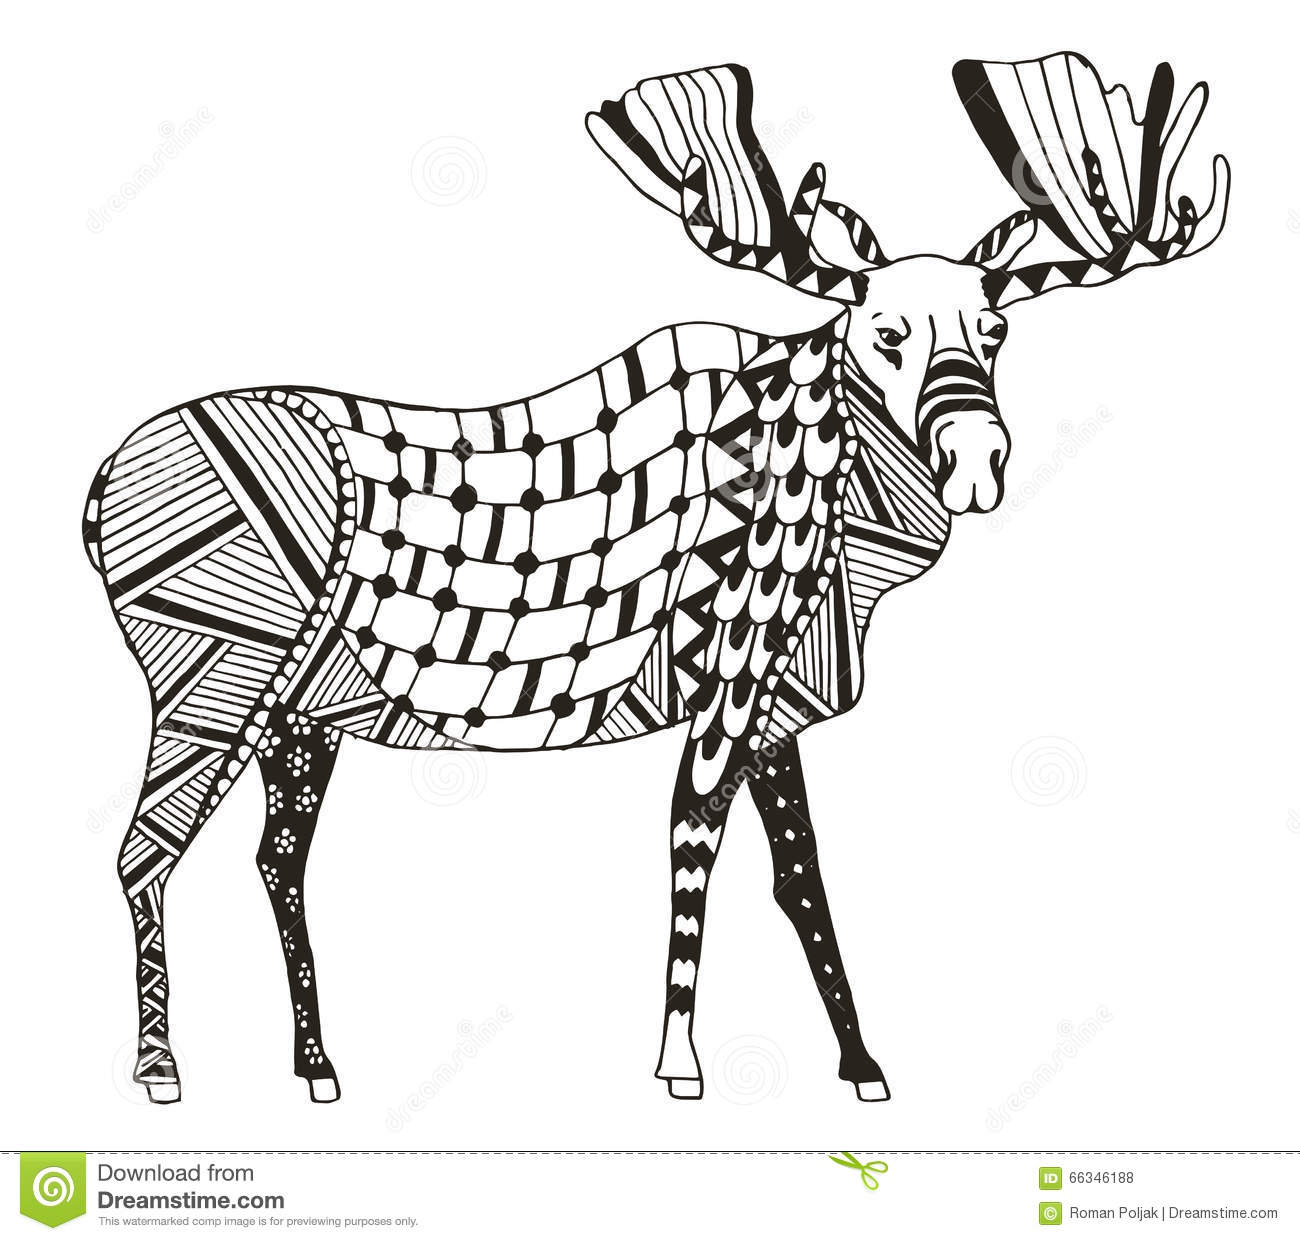 Moose Zentangle Stylized Vector Illustration Freehand Pencil Stock Vector